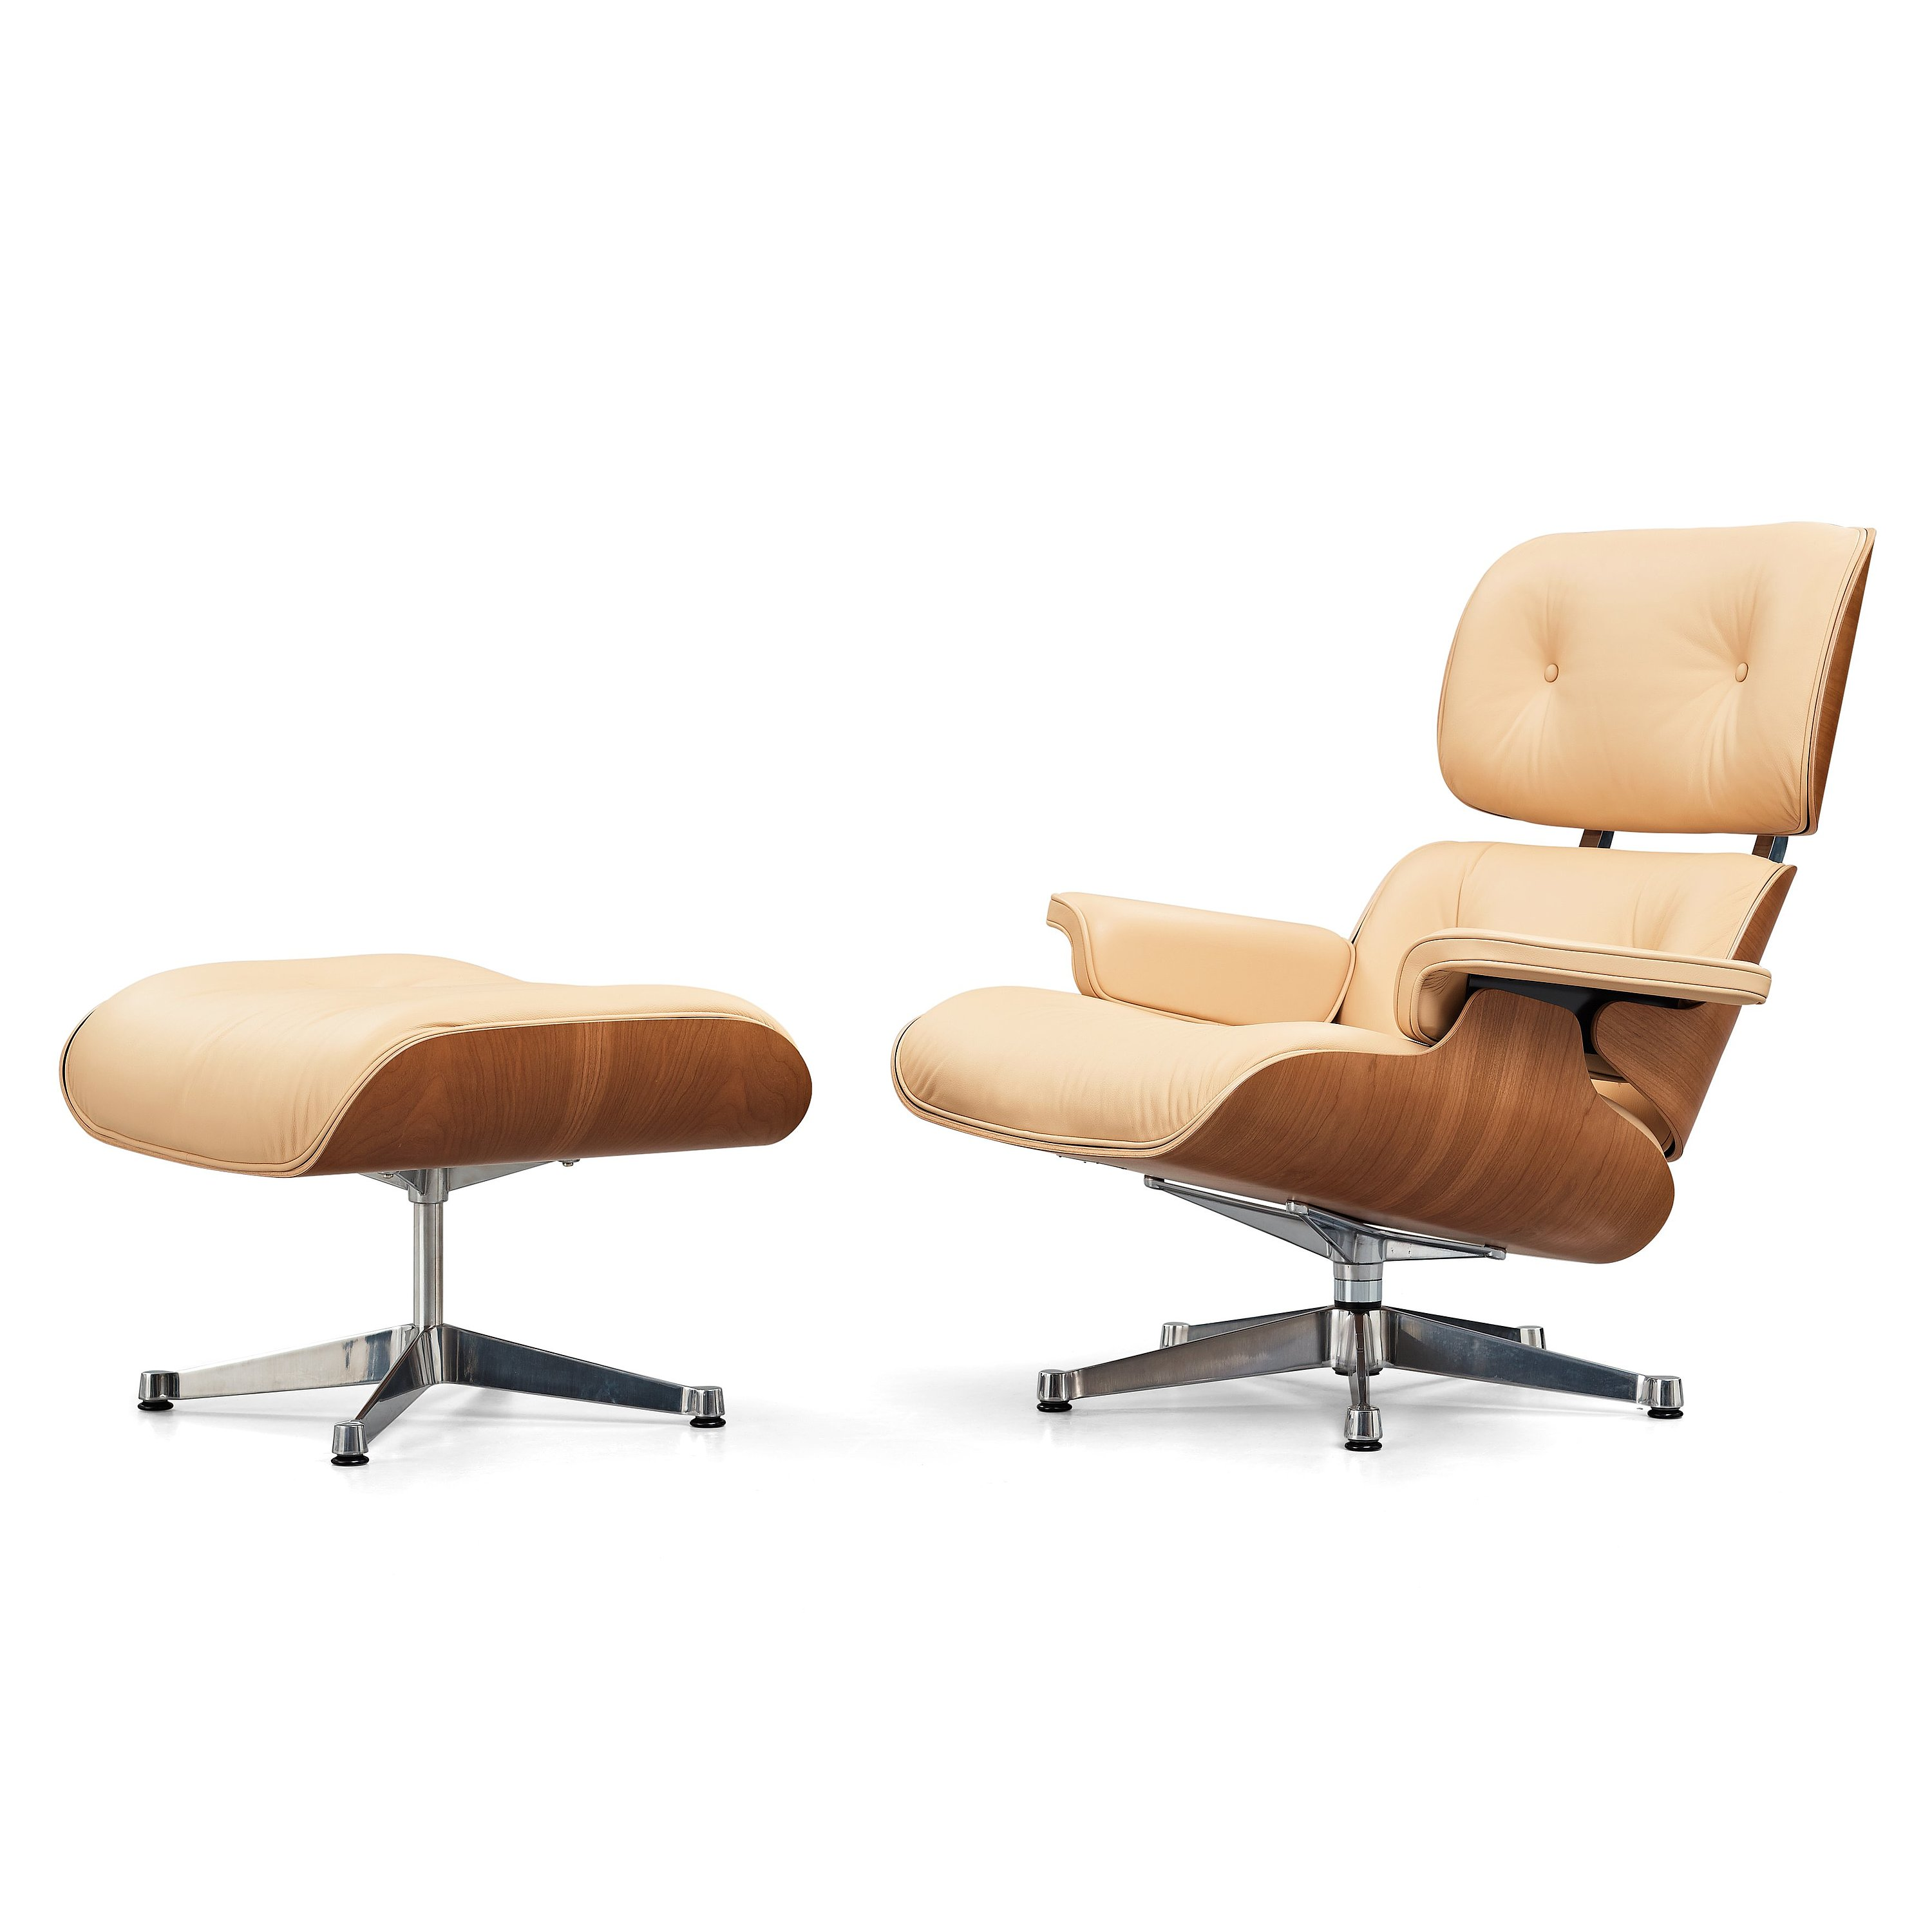 Enjoyable Charles Ray Eames Lounge Chair With Ottoman For Vitra Short Links Chair Design For Home Short Linksinfo